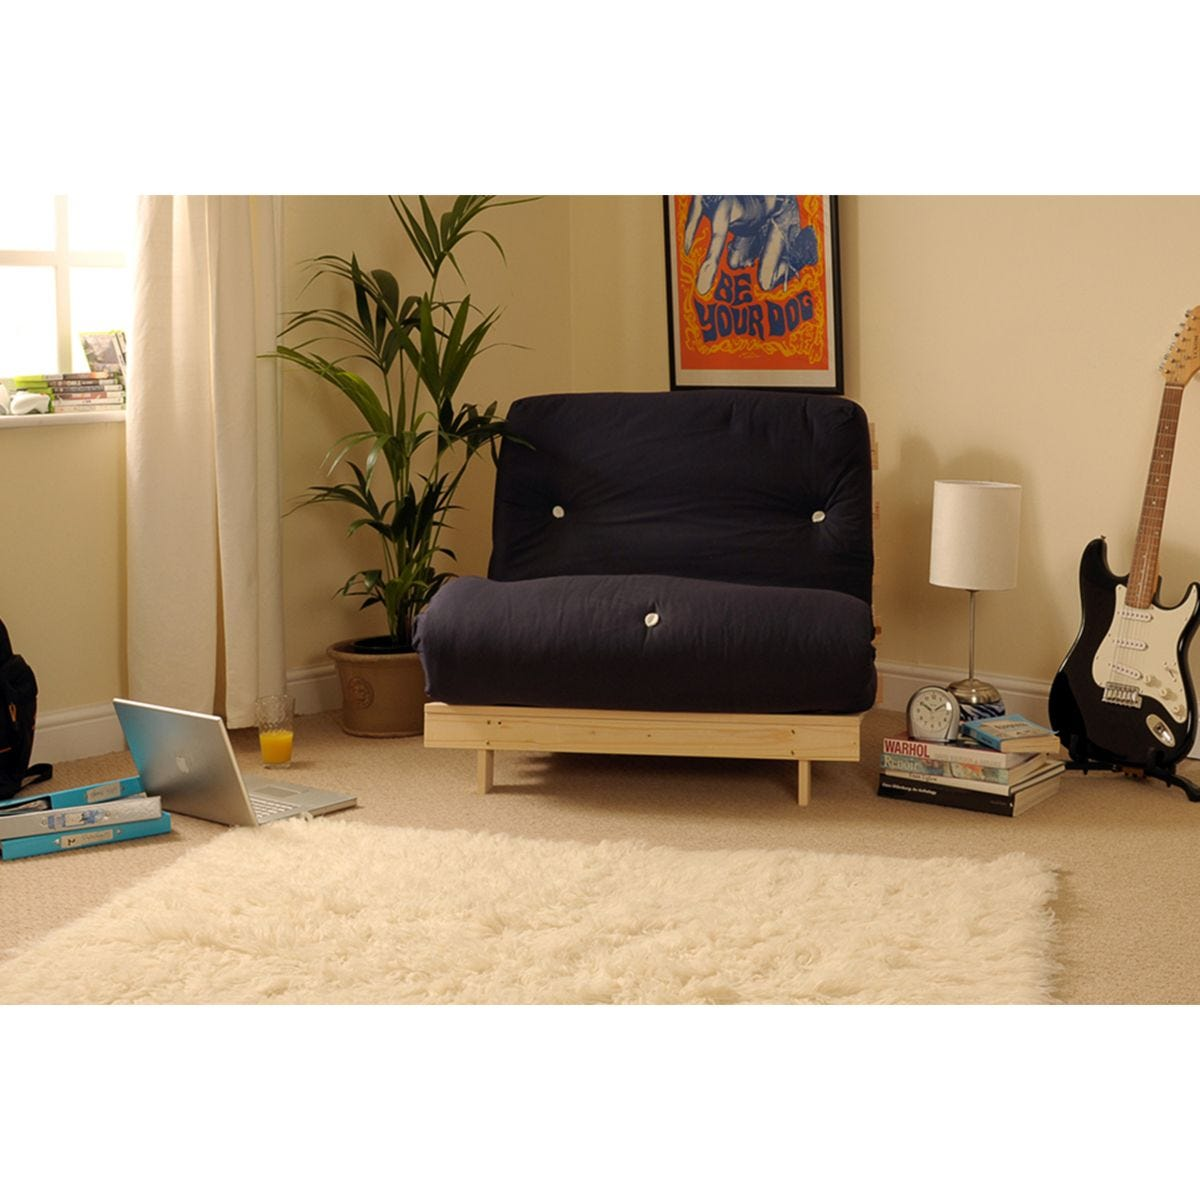 Albury Double Sofa Bed Set With Tufted Mattress - Black